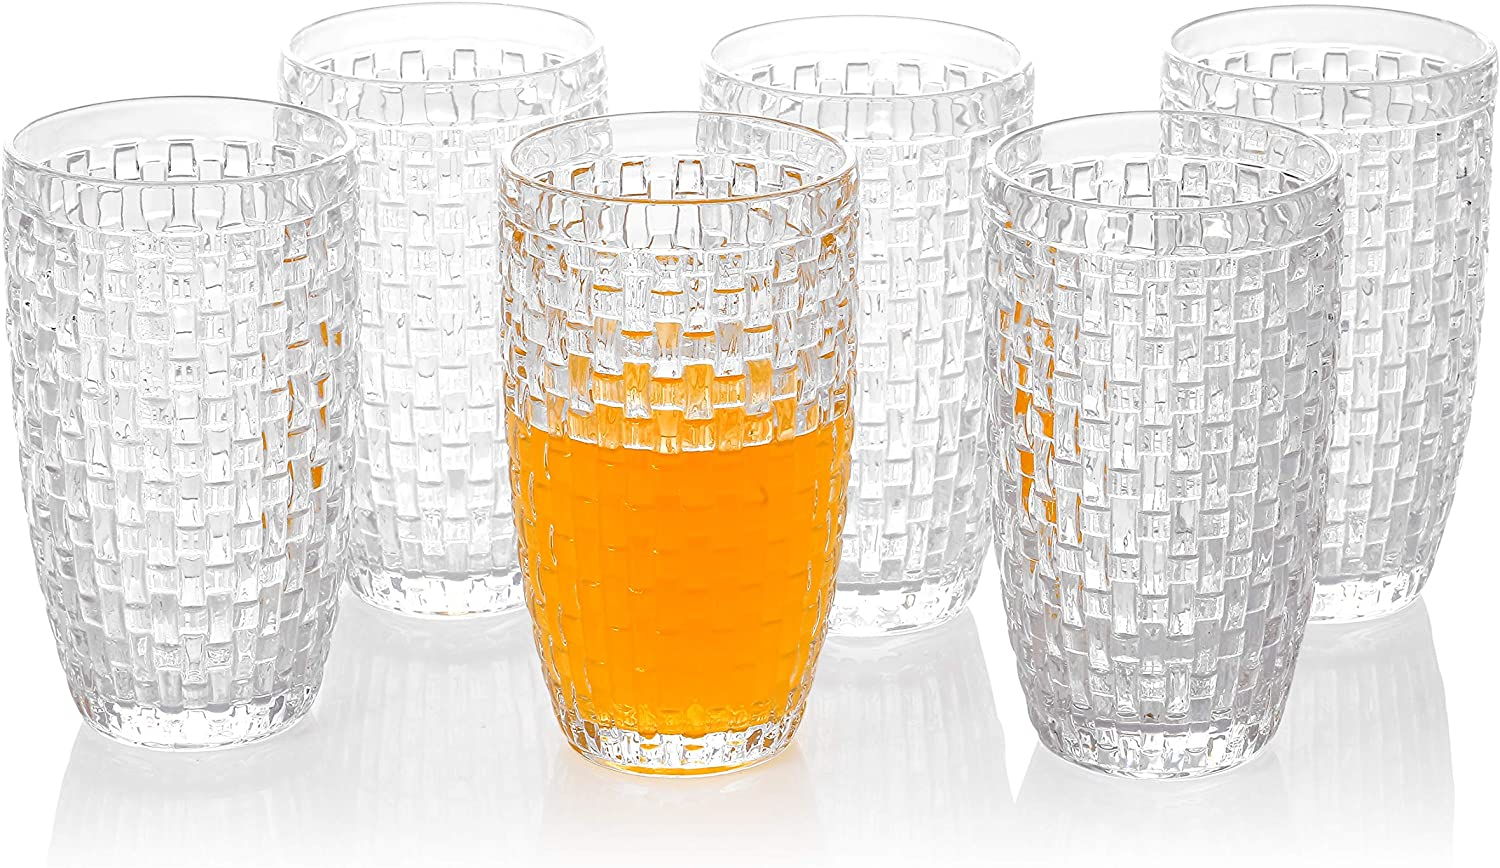 Omita Highball Glasses Set of 6 Clear 12 oz Vintage Embossed Tall Drink-ware Iced Beverage Jucie Beer Milk Cup Perfect for Dinner Parties Bars Restaurants Everyday Use